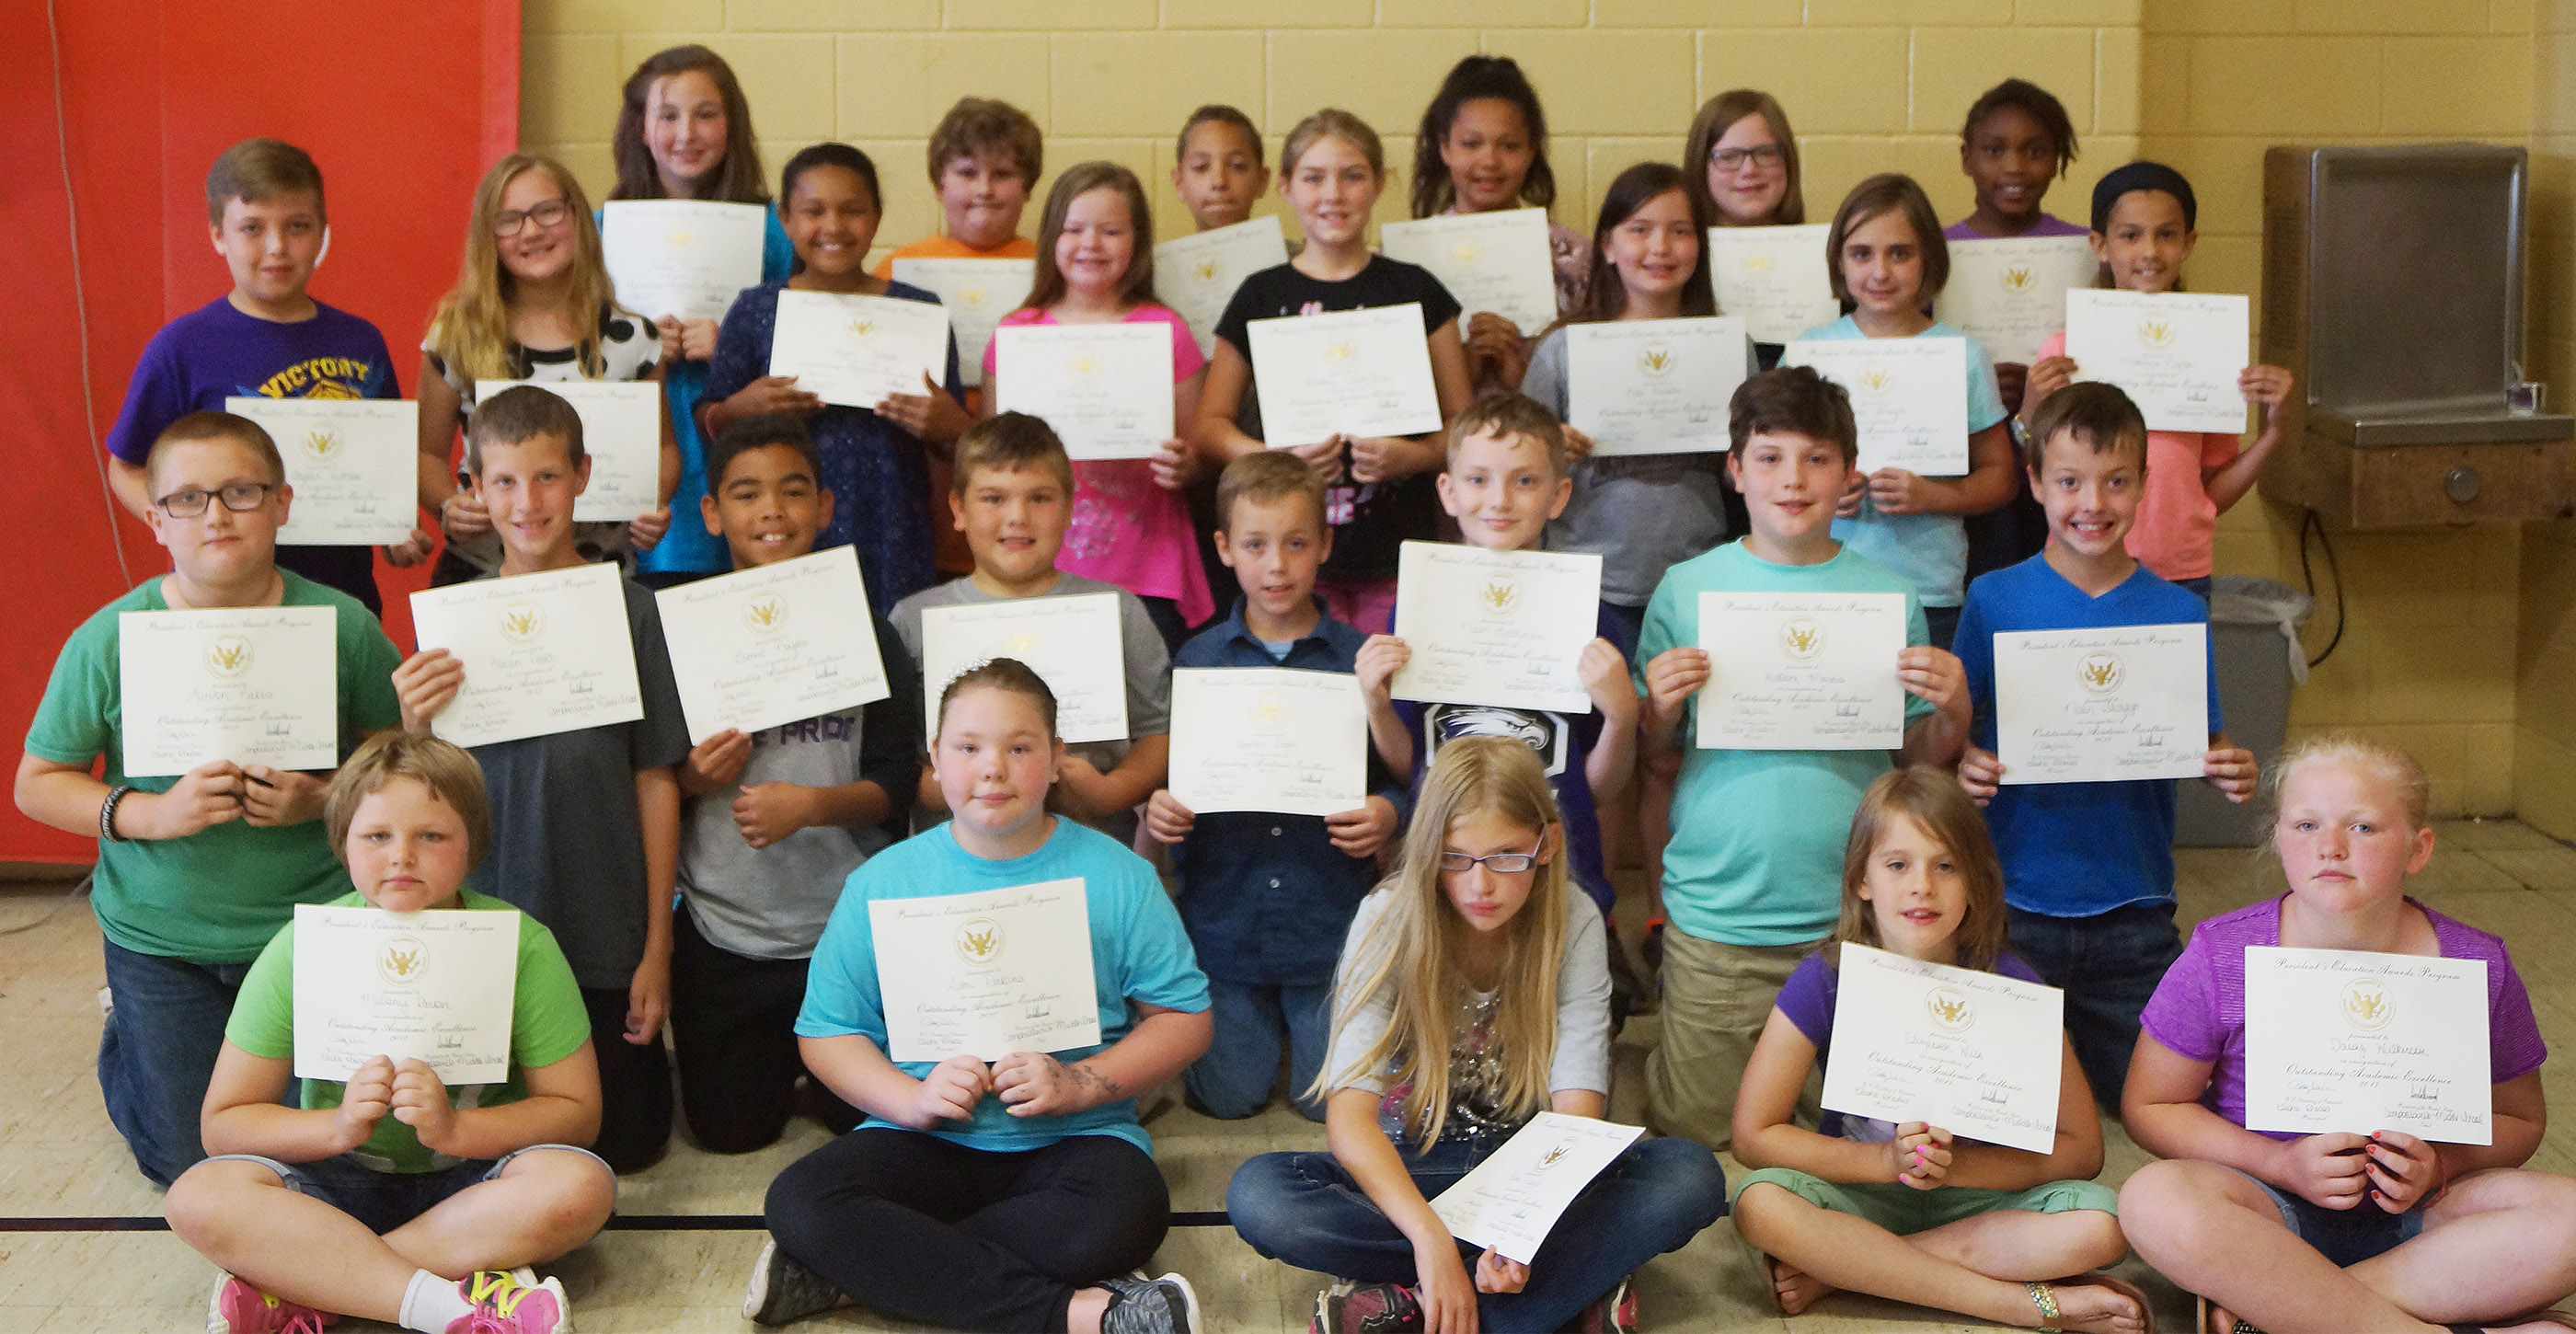 Fourth-grade students receiving the president's award for educational excellence are, from left, front, Mellany Parker, Averi Perkins, Payton Releford, Ellie Wise and Daisy Wilkerson. Second row, Logan Rakes, Rowan Petett, Gabriel Noyola, Logan England, Spencer Bates, Noah Leachman, Andrew Mardis and Noah Skaggs. Third row, Skylar Wilhoite, Lilyan Murphy, Jaclyn Jackson, Miley Hash, Harley Couch-Allen, Kate Billeter, Anna Floyd and Mackenzie Negron. Back, Riley Newton, Zeke Harris, Aiden Eastridge, Kenya Bridgewater, Kaylyn Lawson and Ta'Zaria Owens.